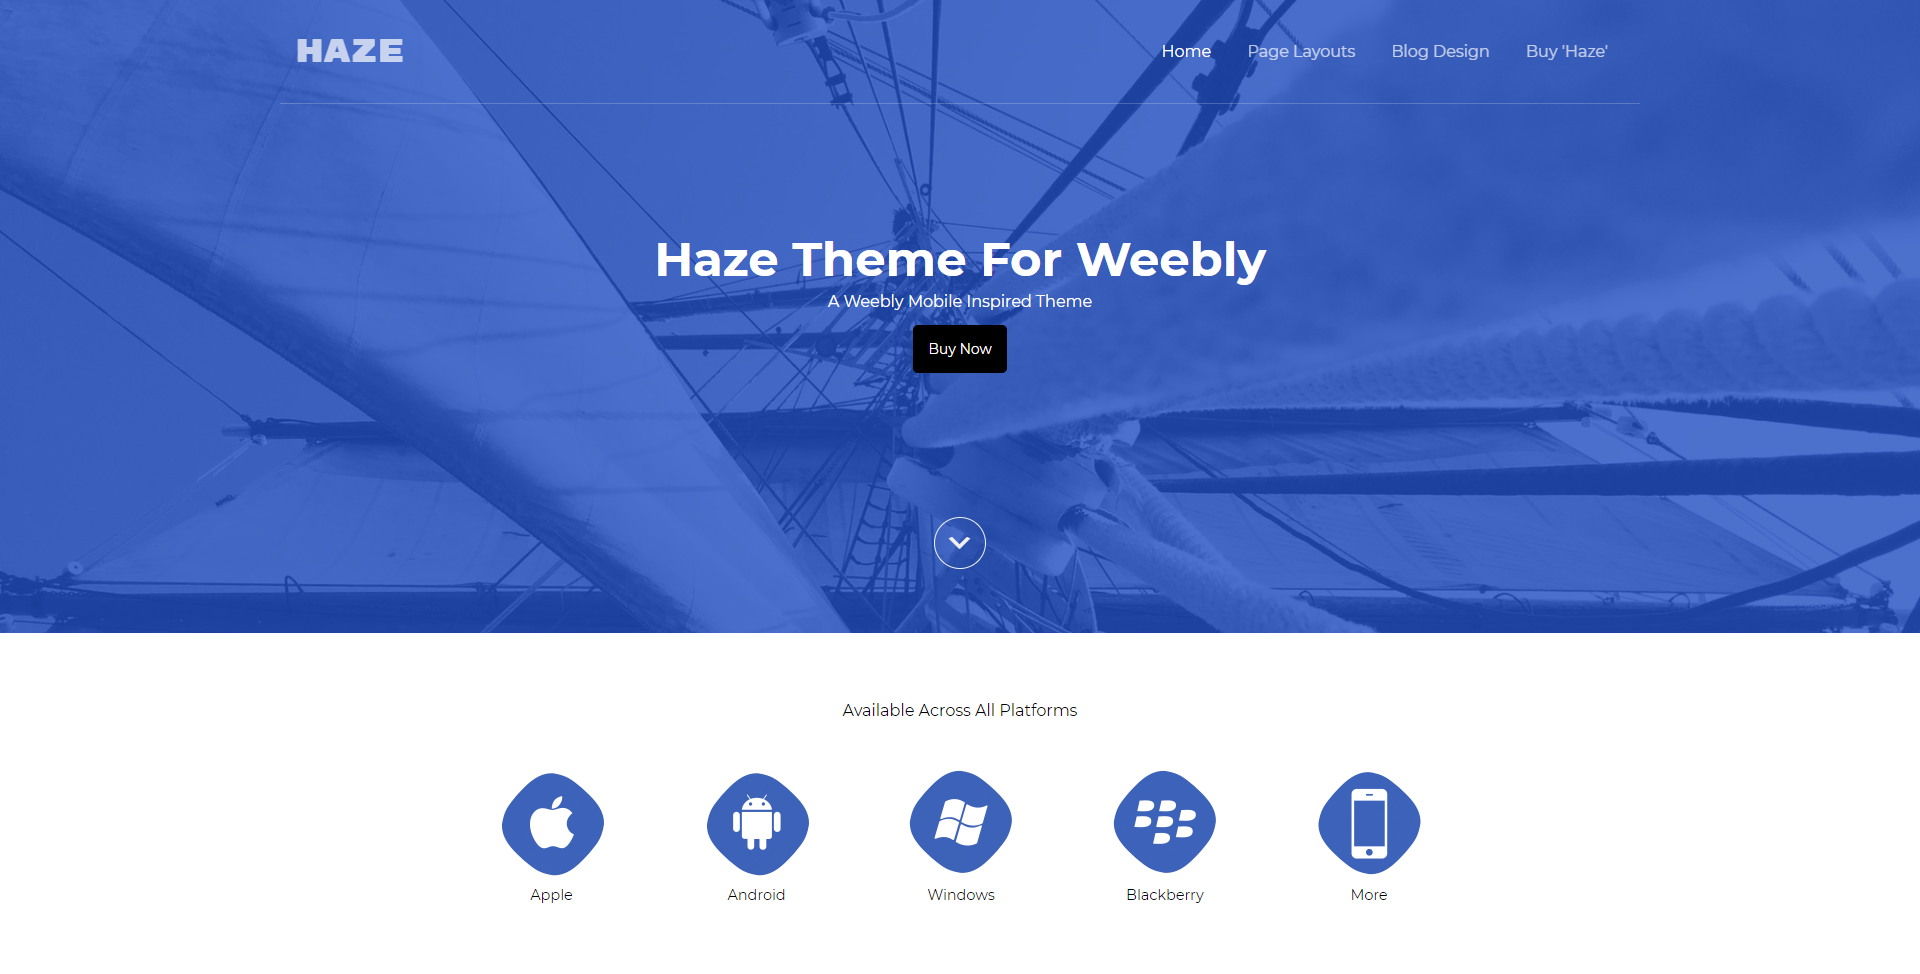 Haze Weebly Business Theme